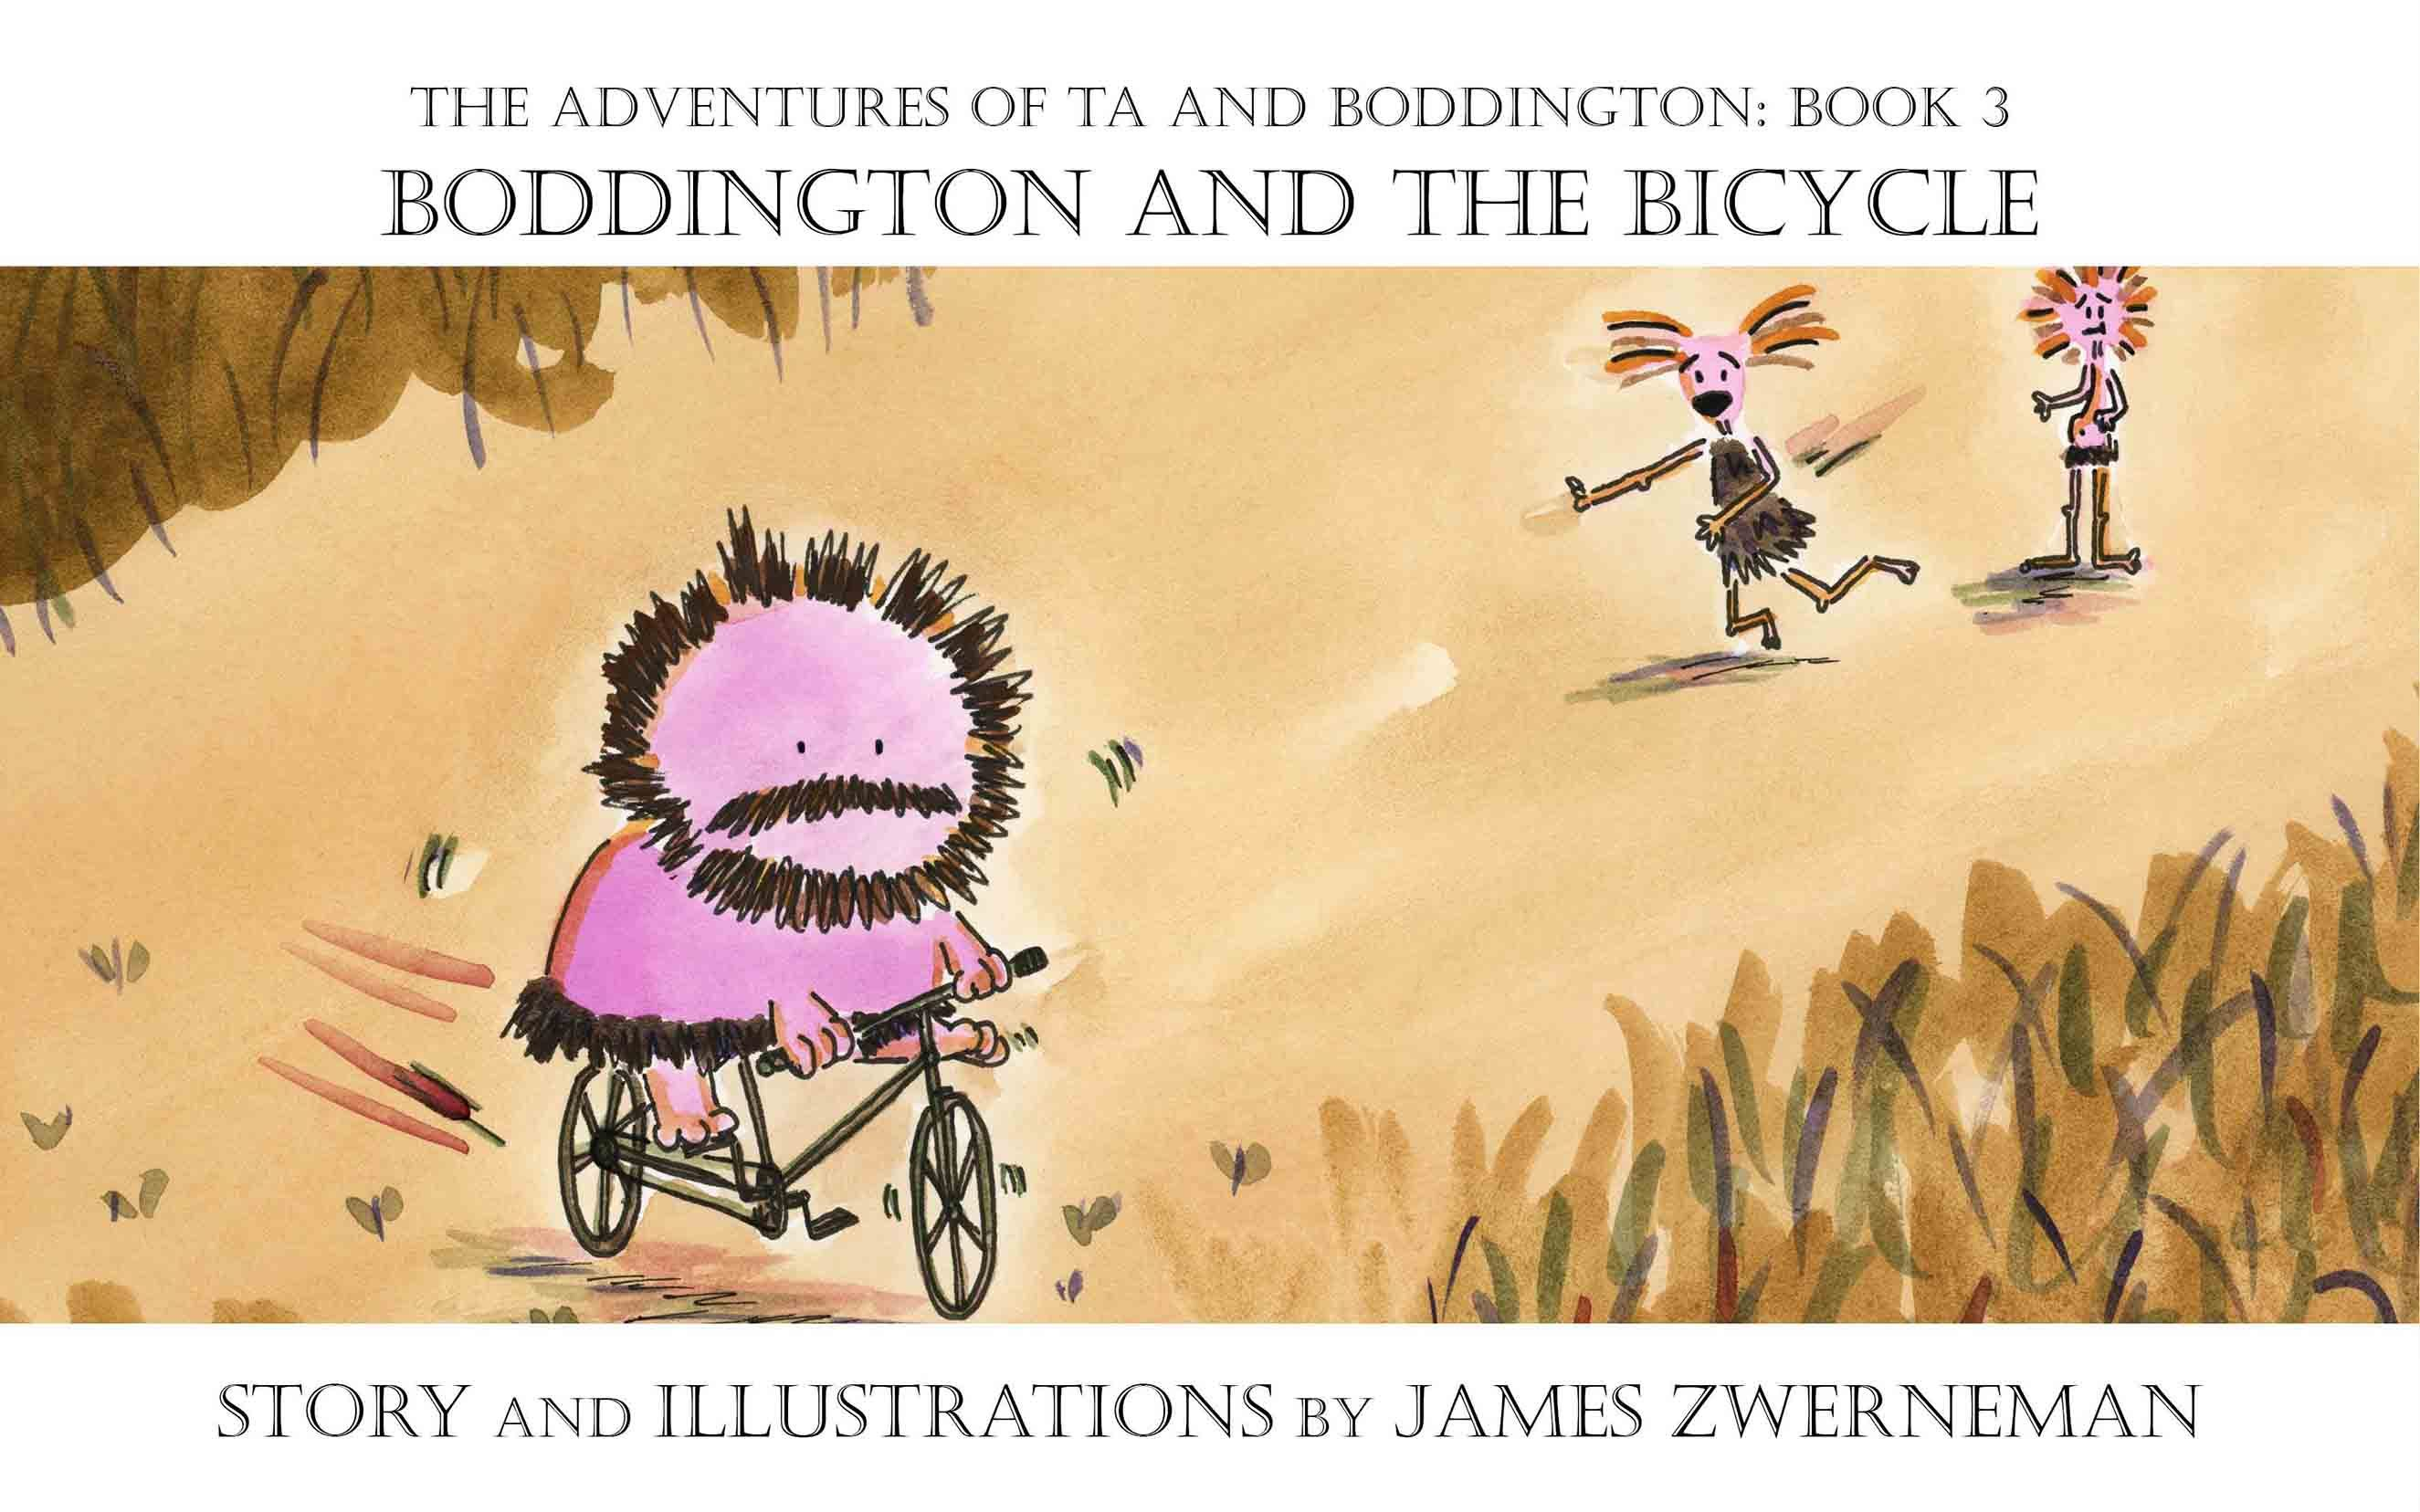 Boddington and the Bicycle (The Adventures of Ta and Boddington, #3)  by  James Zwerneman